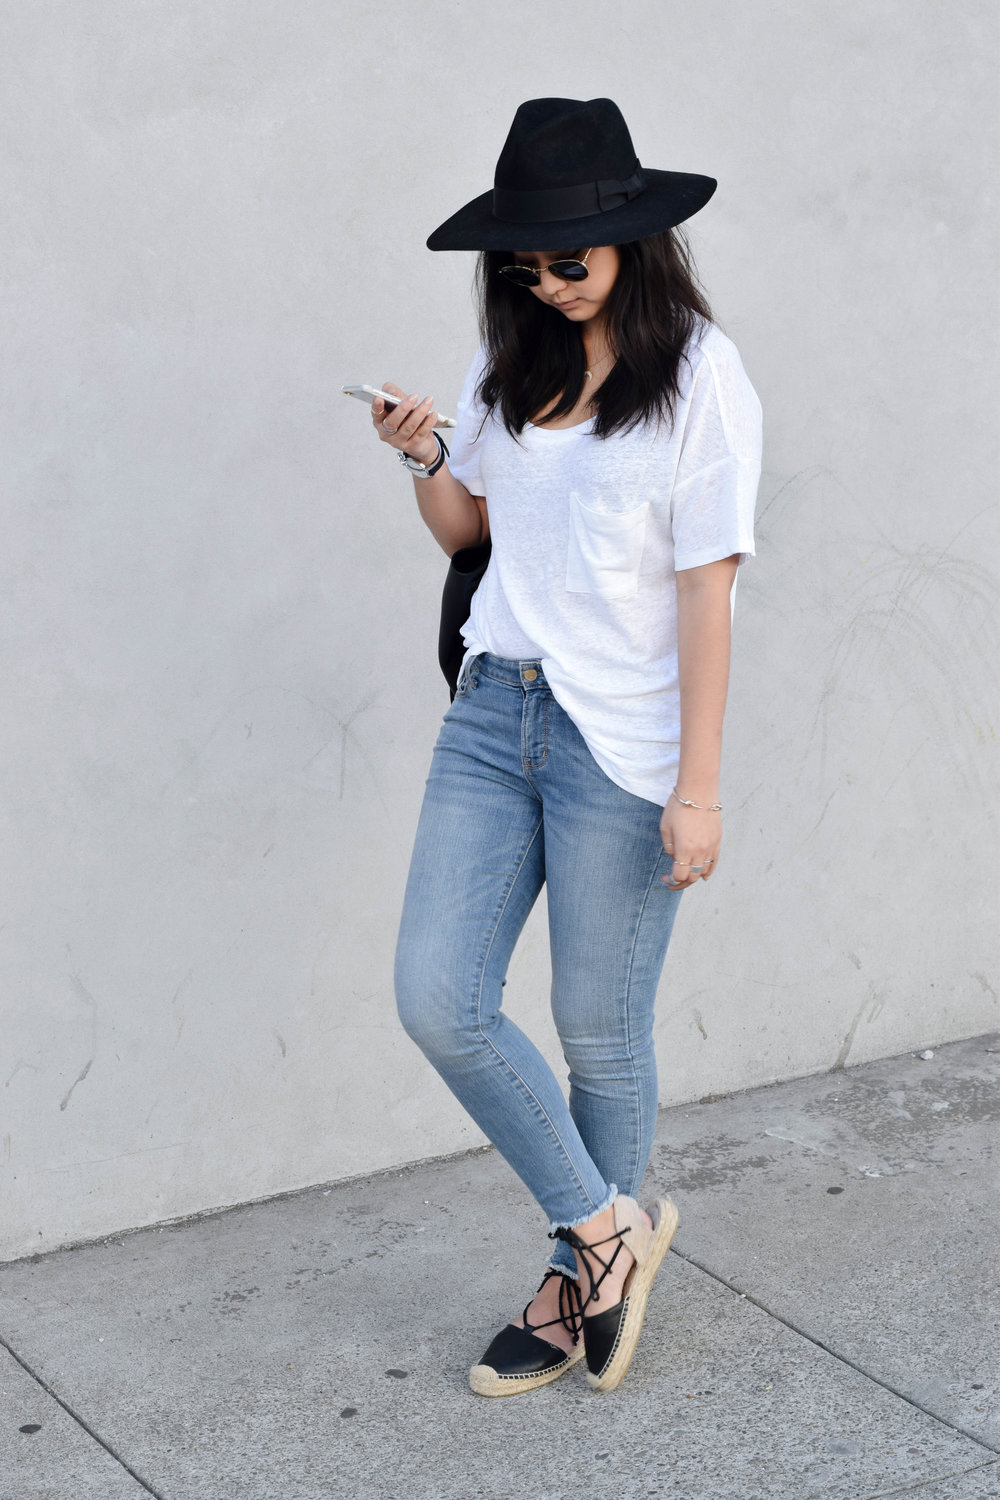 OLD NAVY boyfriend tee/ OLD NAVY mid-rise skinny jeans/ SOLUDOS sandals